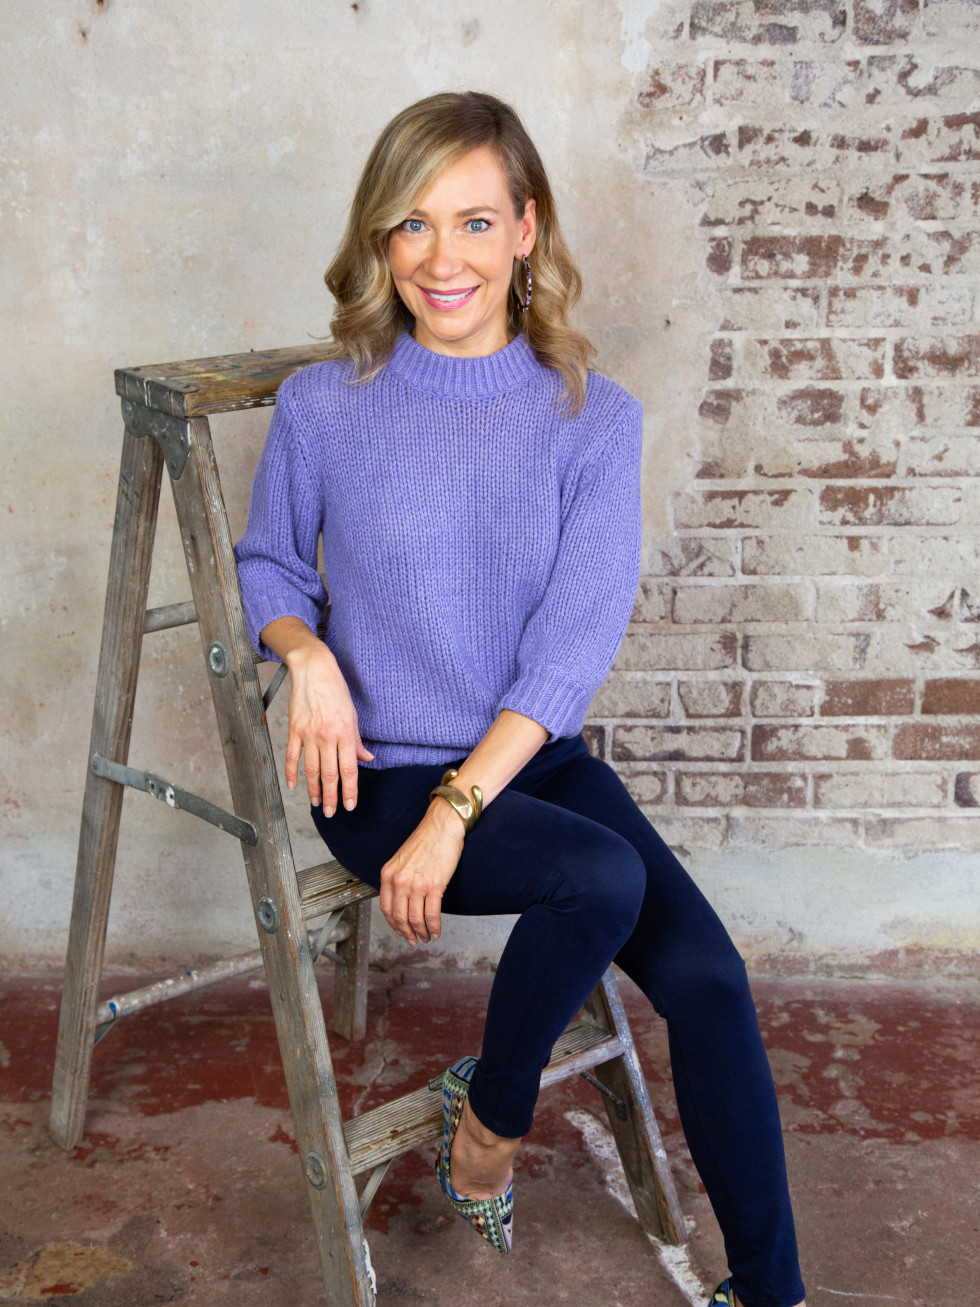 French Cuff Boutique founder